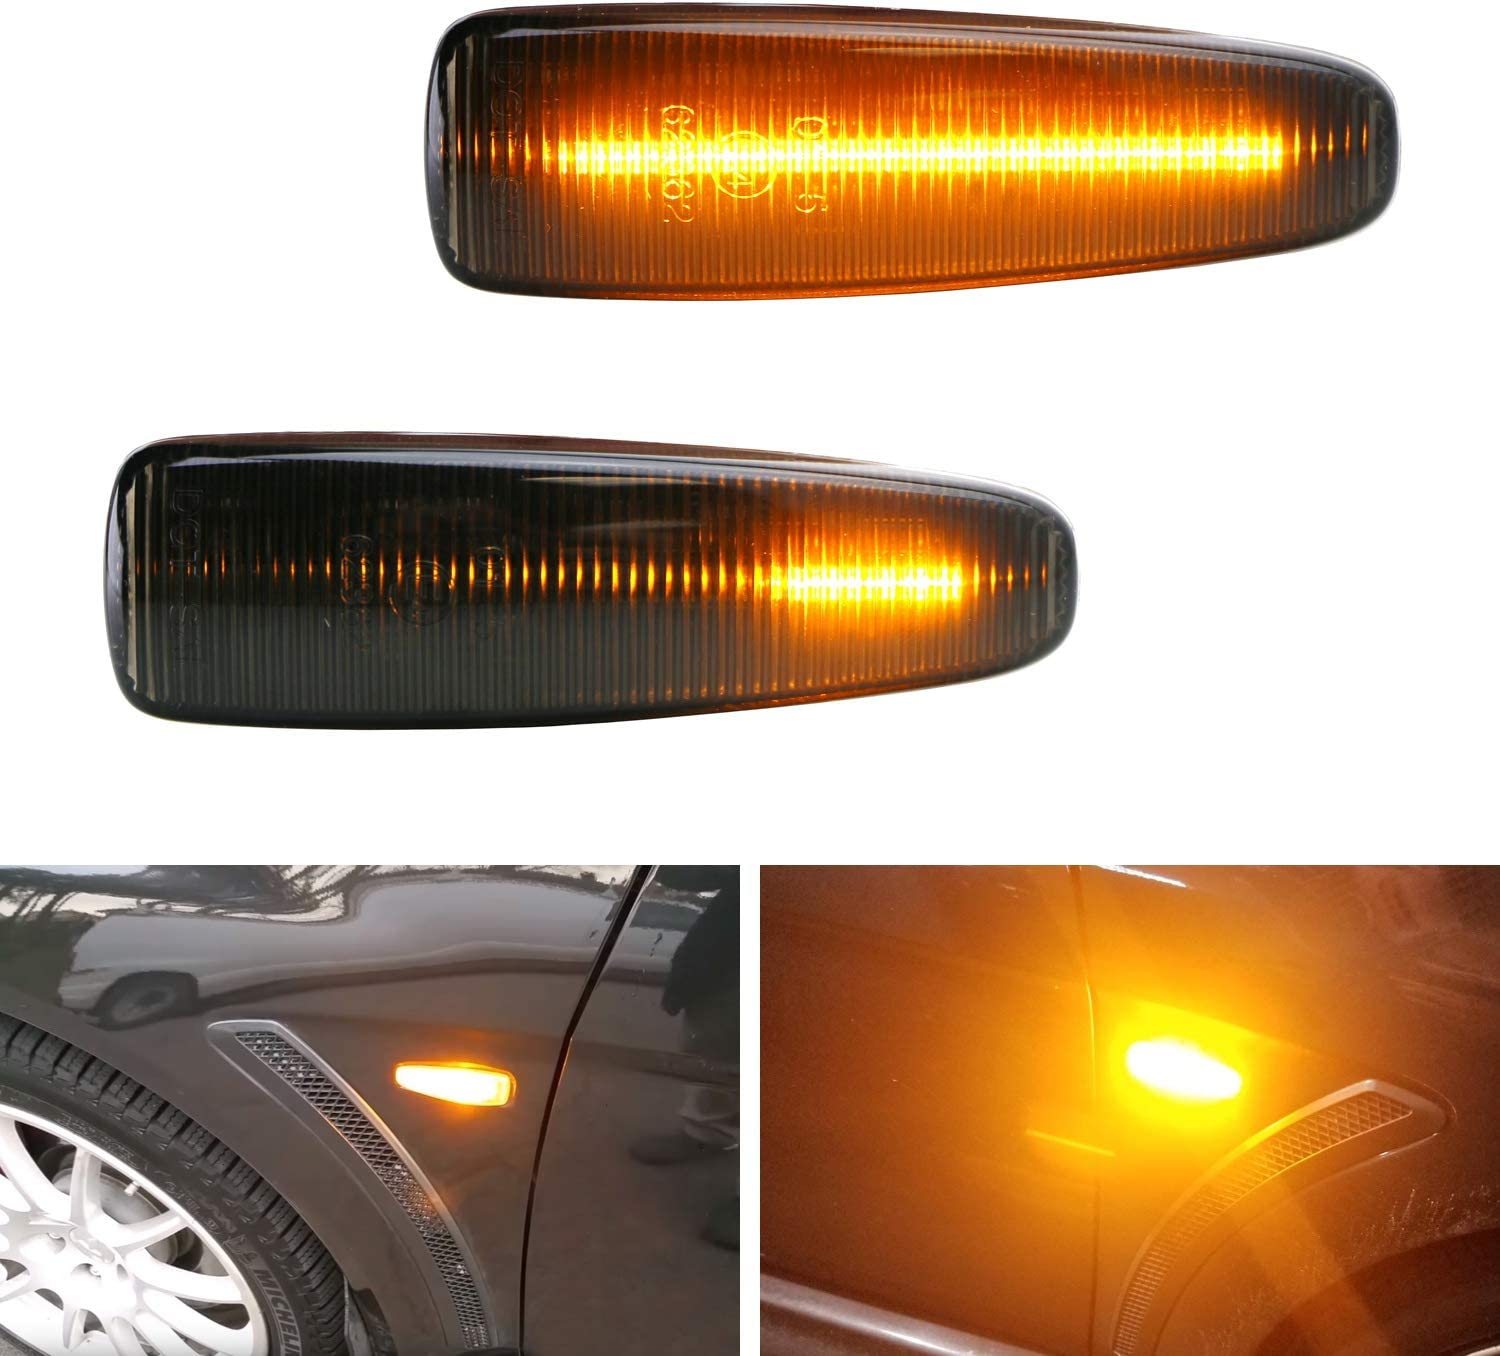 Powered by 36-SMD LED OEM Sidemarker Lamps Replacement Smoked Lens Sequential Amber LED Side Marker Light Compatible With Mitsubishi Lancer Evo X Mirage Outlander Sport